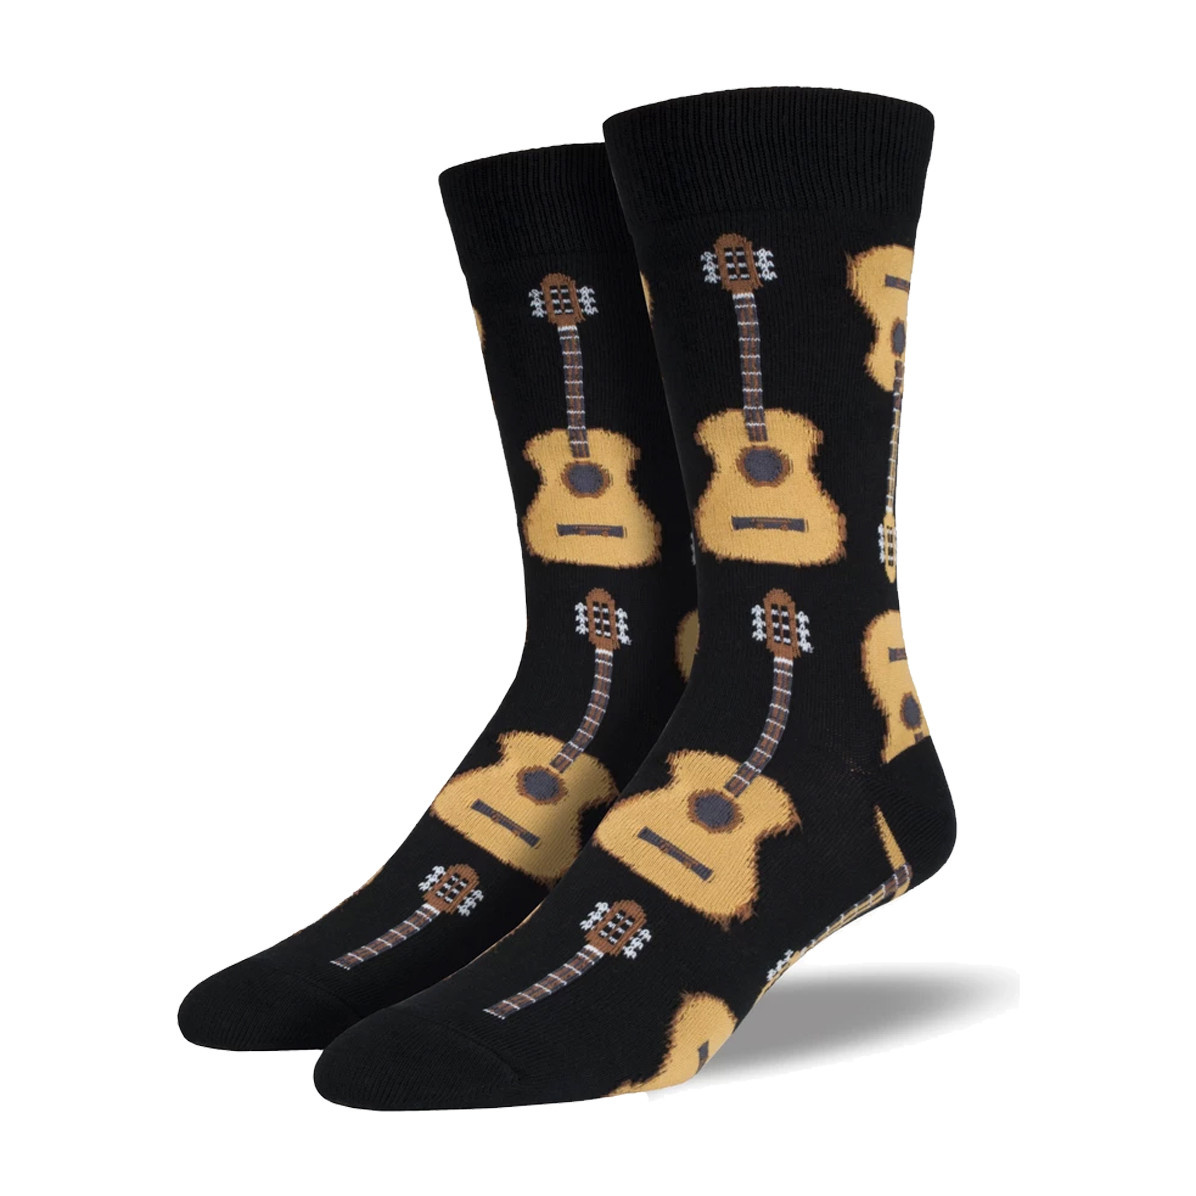 Socksmith Socksmith Men's Cotton Crew Socks Guitars